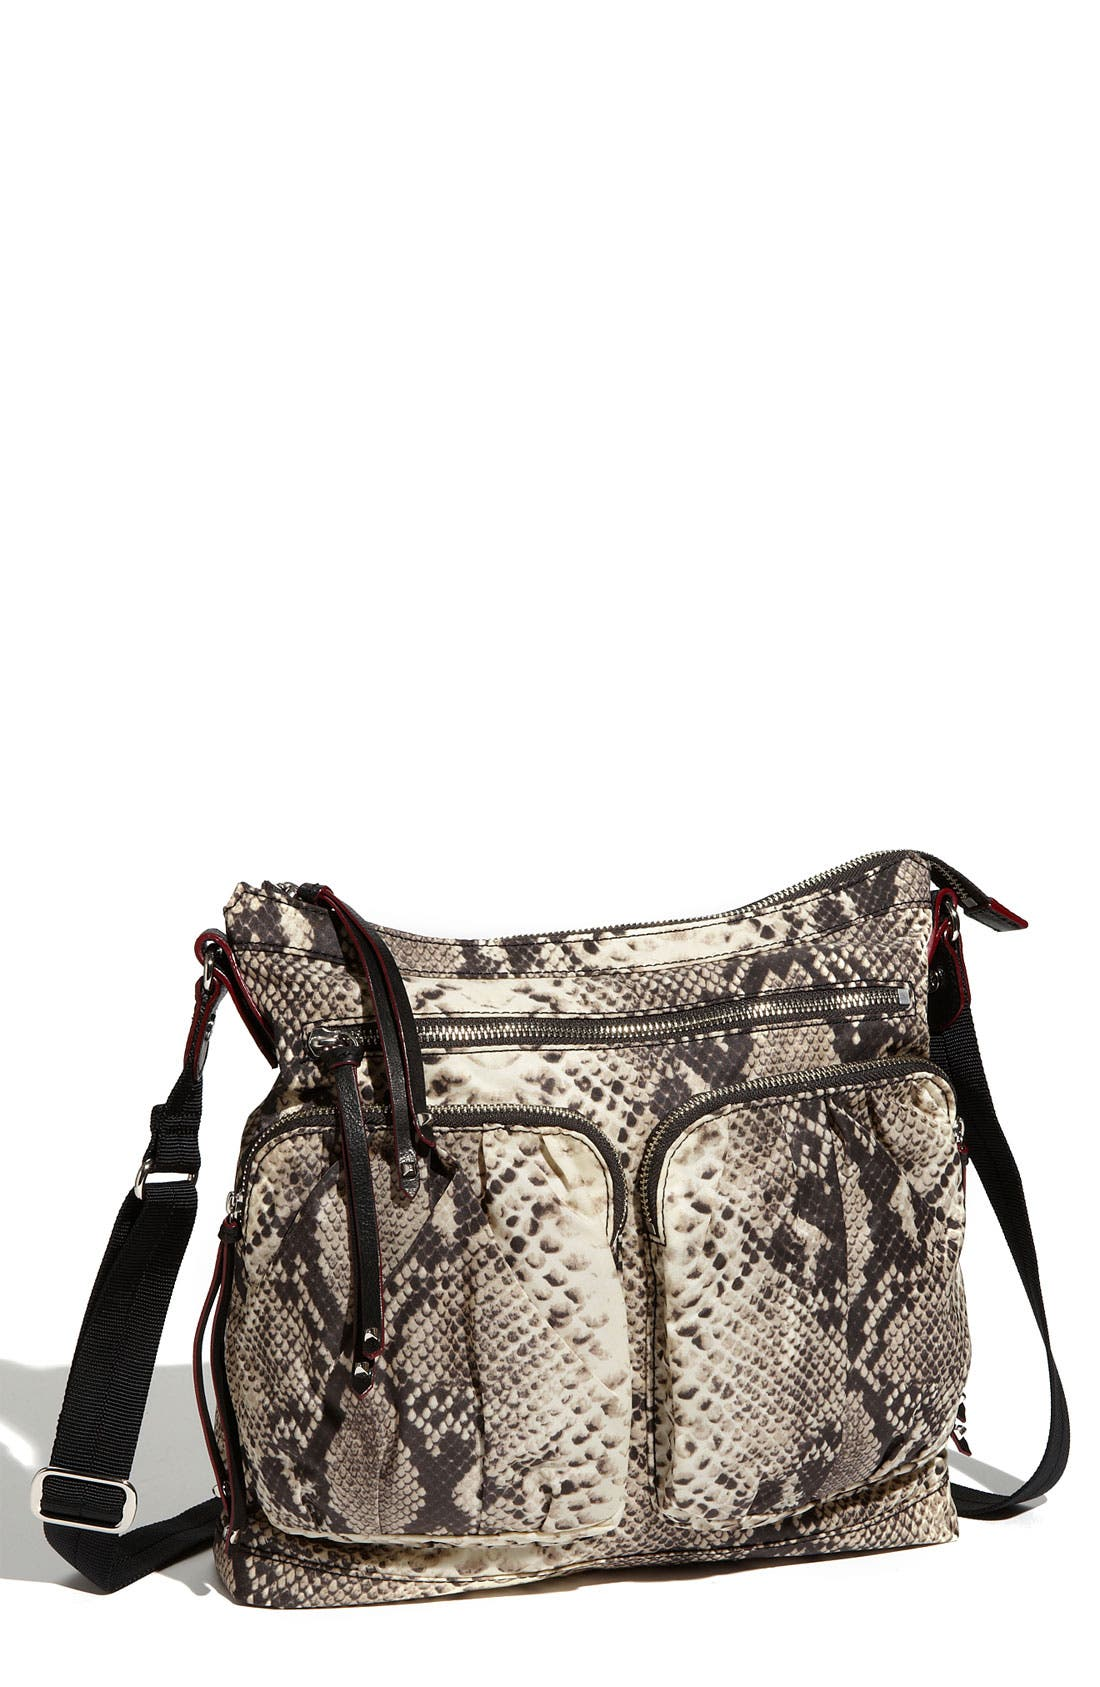 Alternate Image 1 Selected - M Z Wallace 'Mia' Snake Print Crossbody Bag